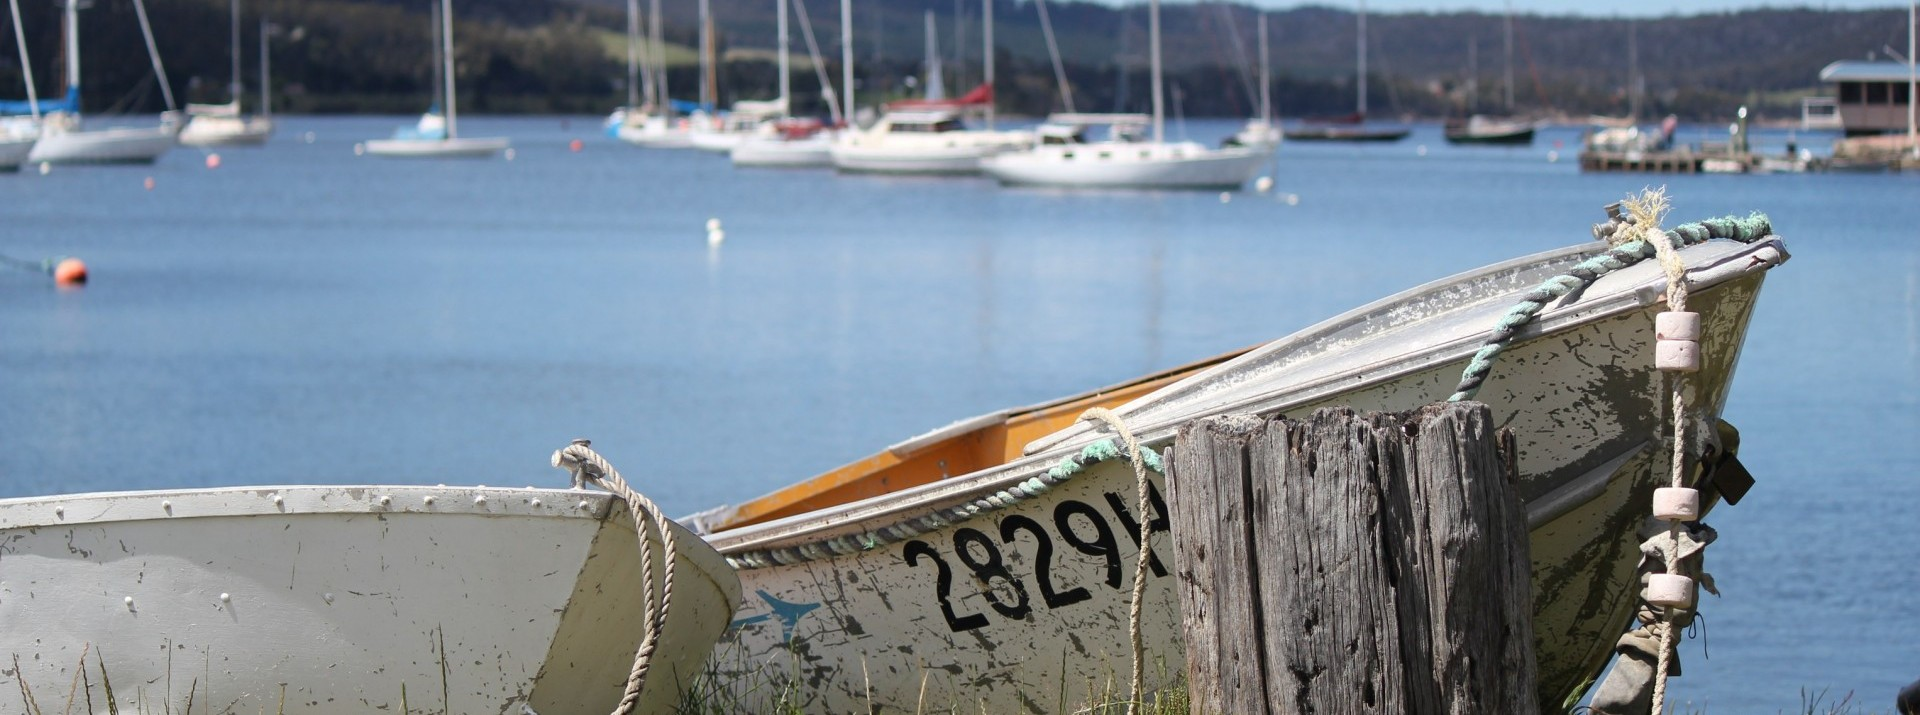 <p> </p><p> </p>The Cygnet Market is located in the picturesque town of Cygnet, Tasmania.